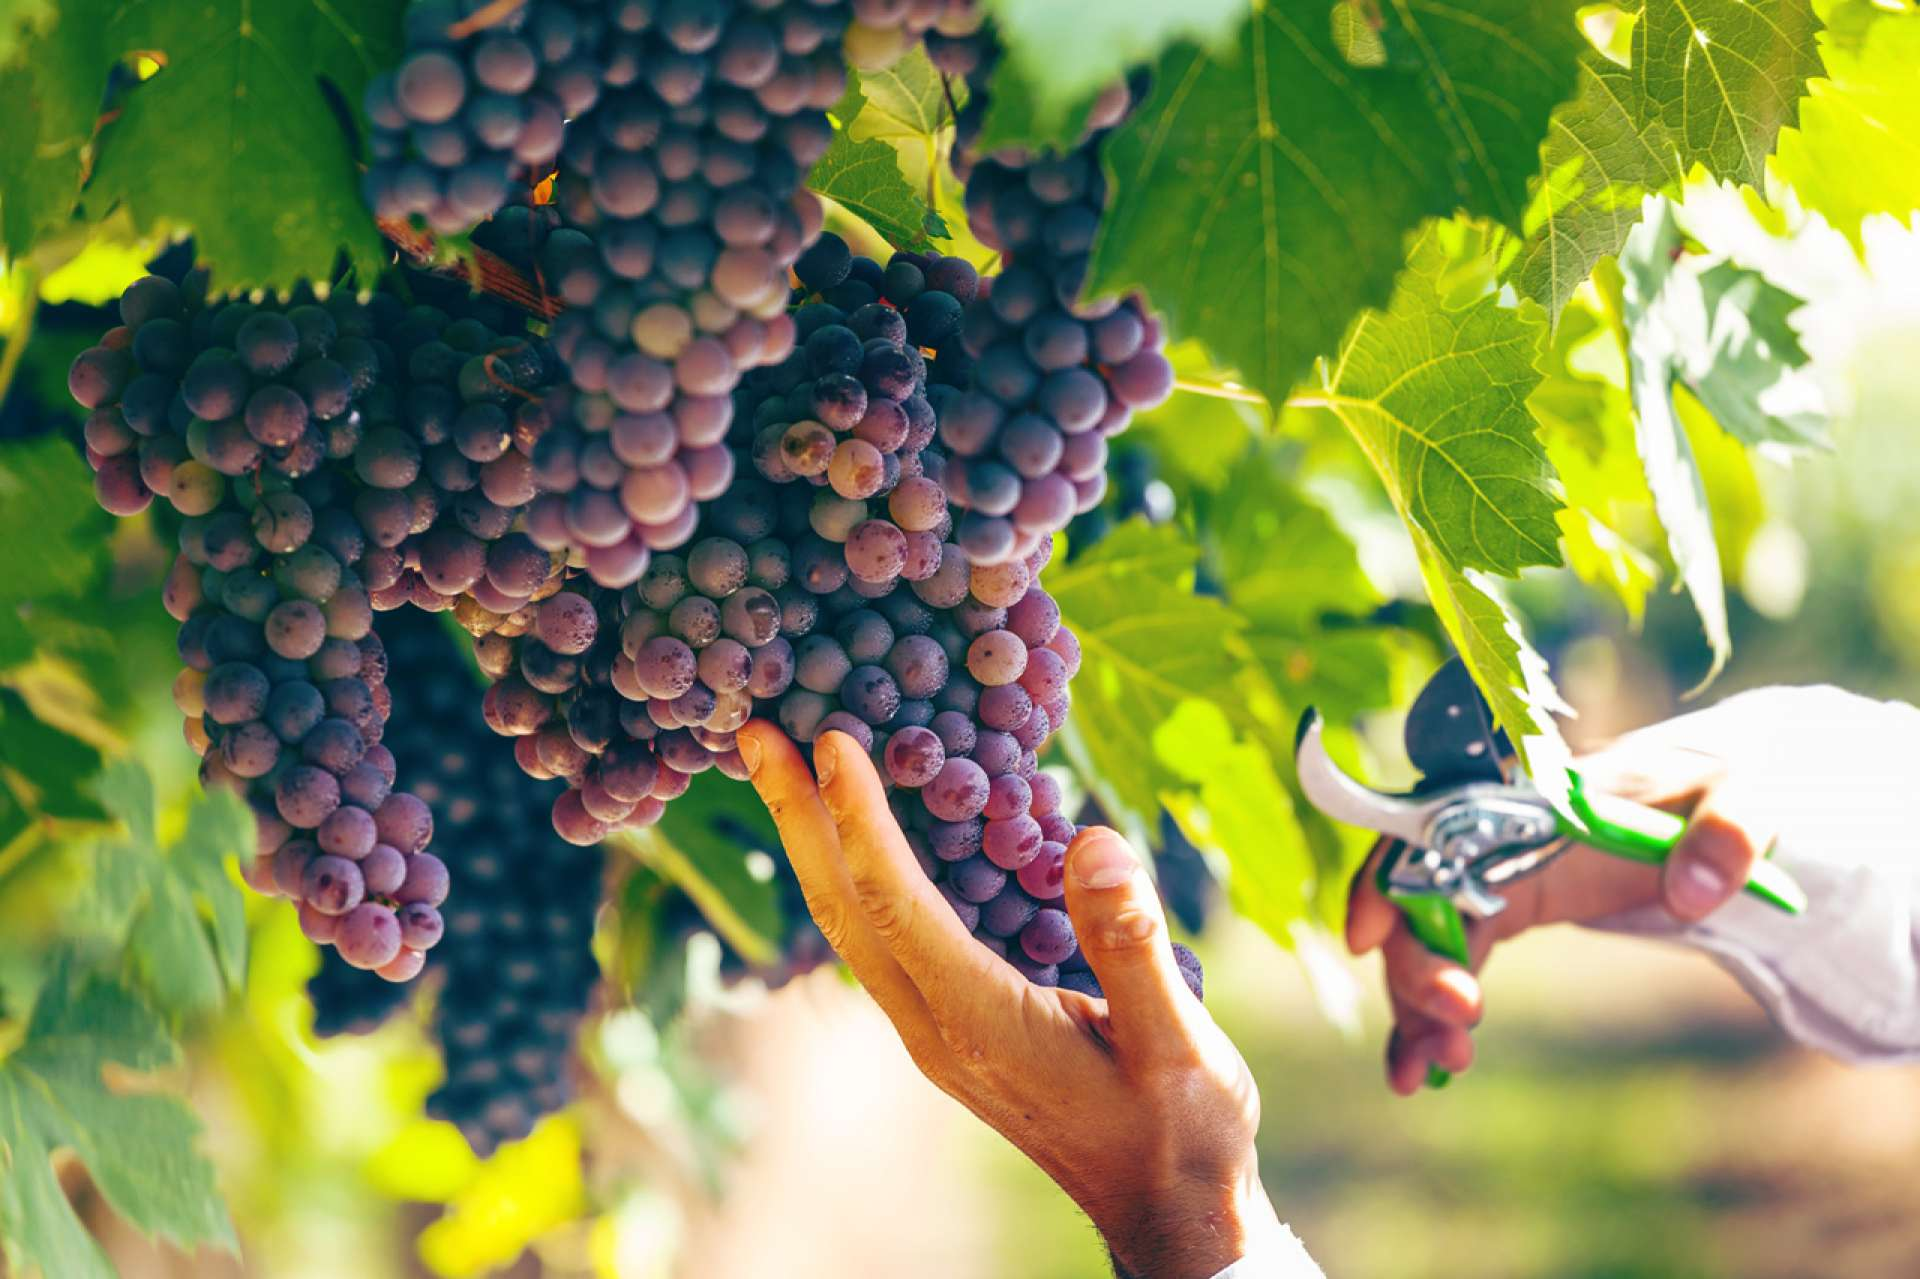 Why is Tuscan wine so special?